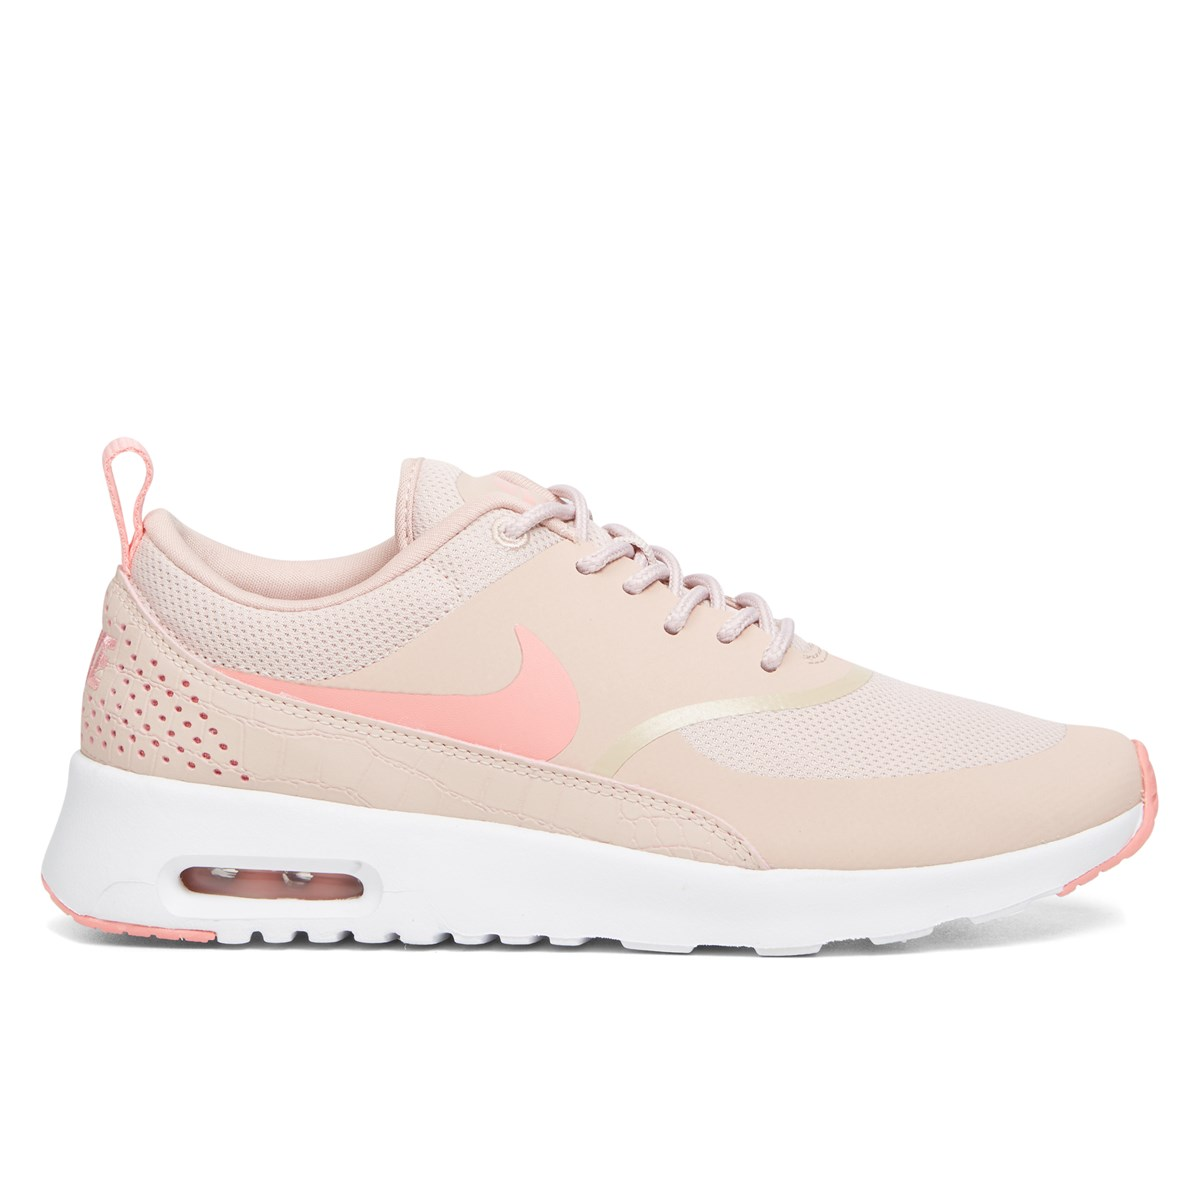 women 39 s air max thea light pink sneakers little burgundy. Black Bedroom Furniture Sets. Home Design Ideas